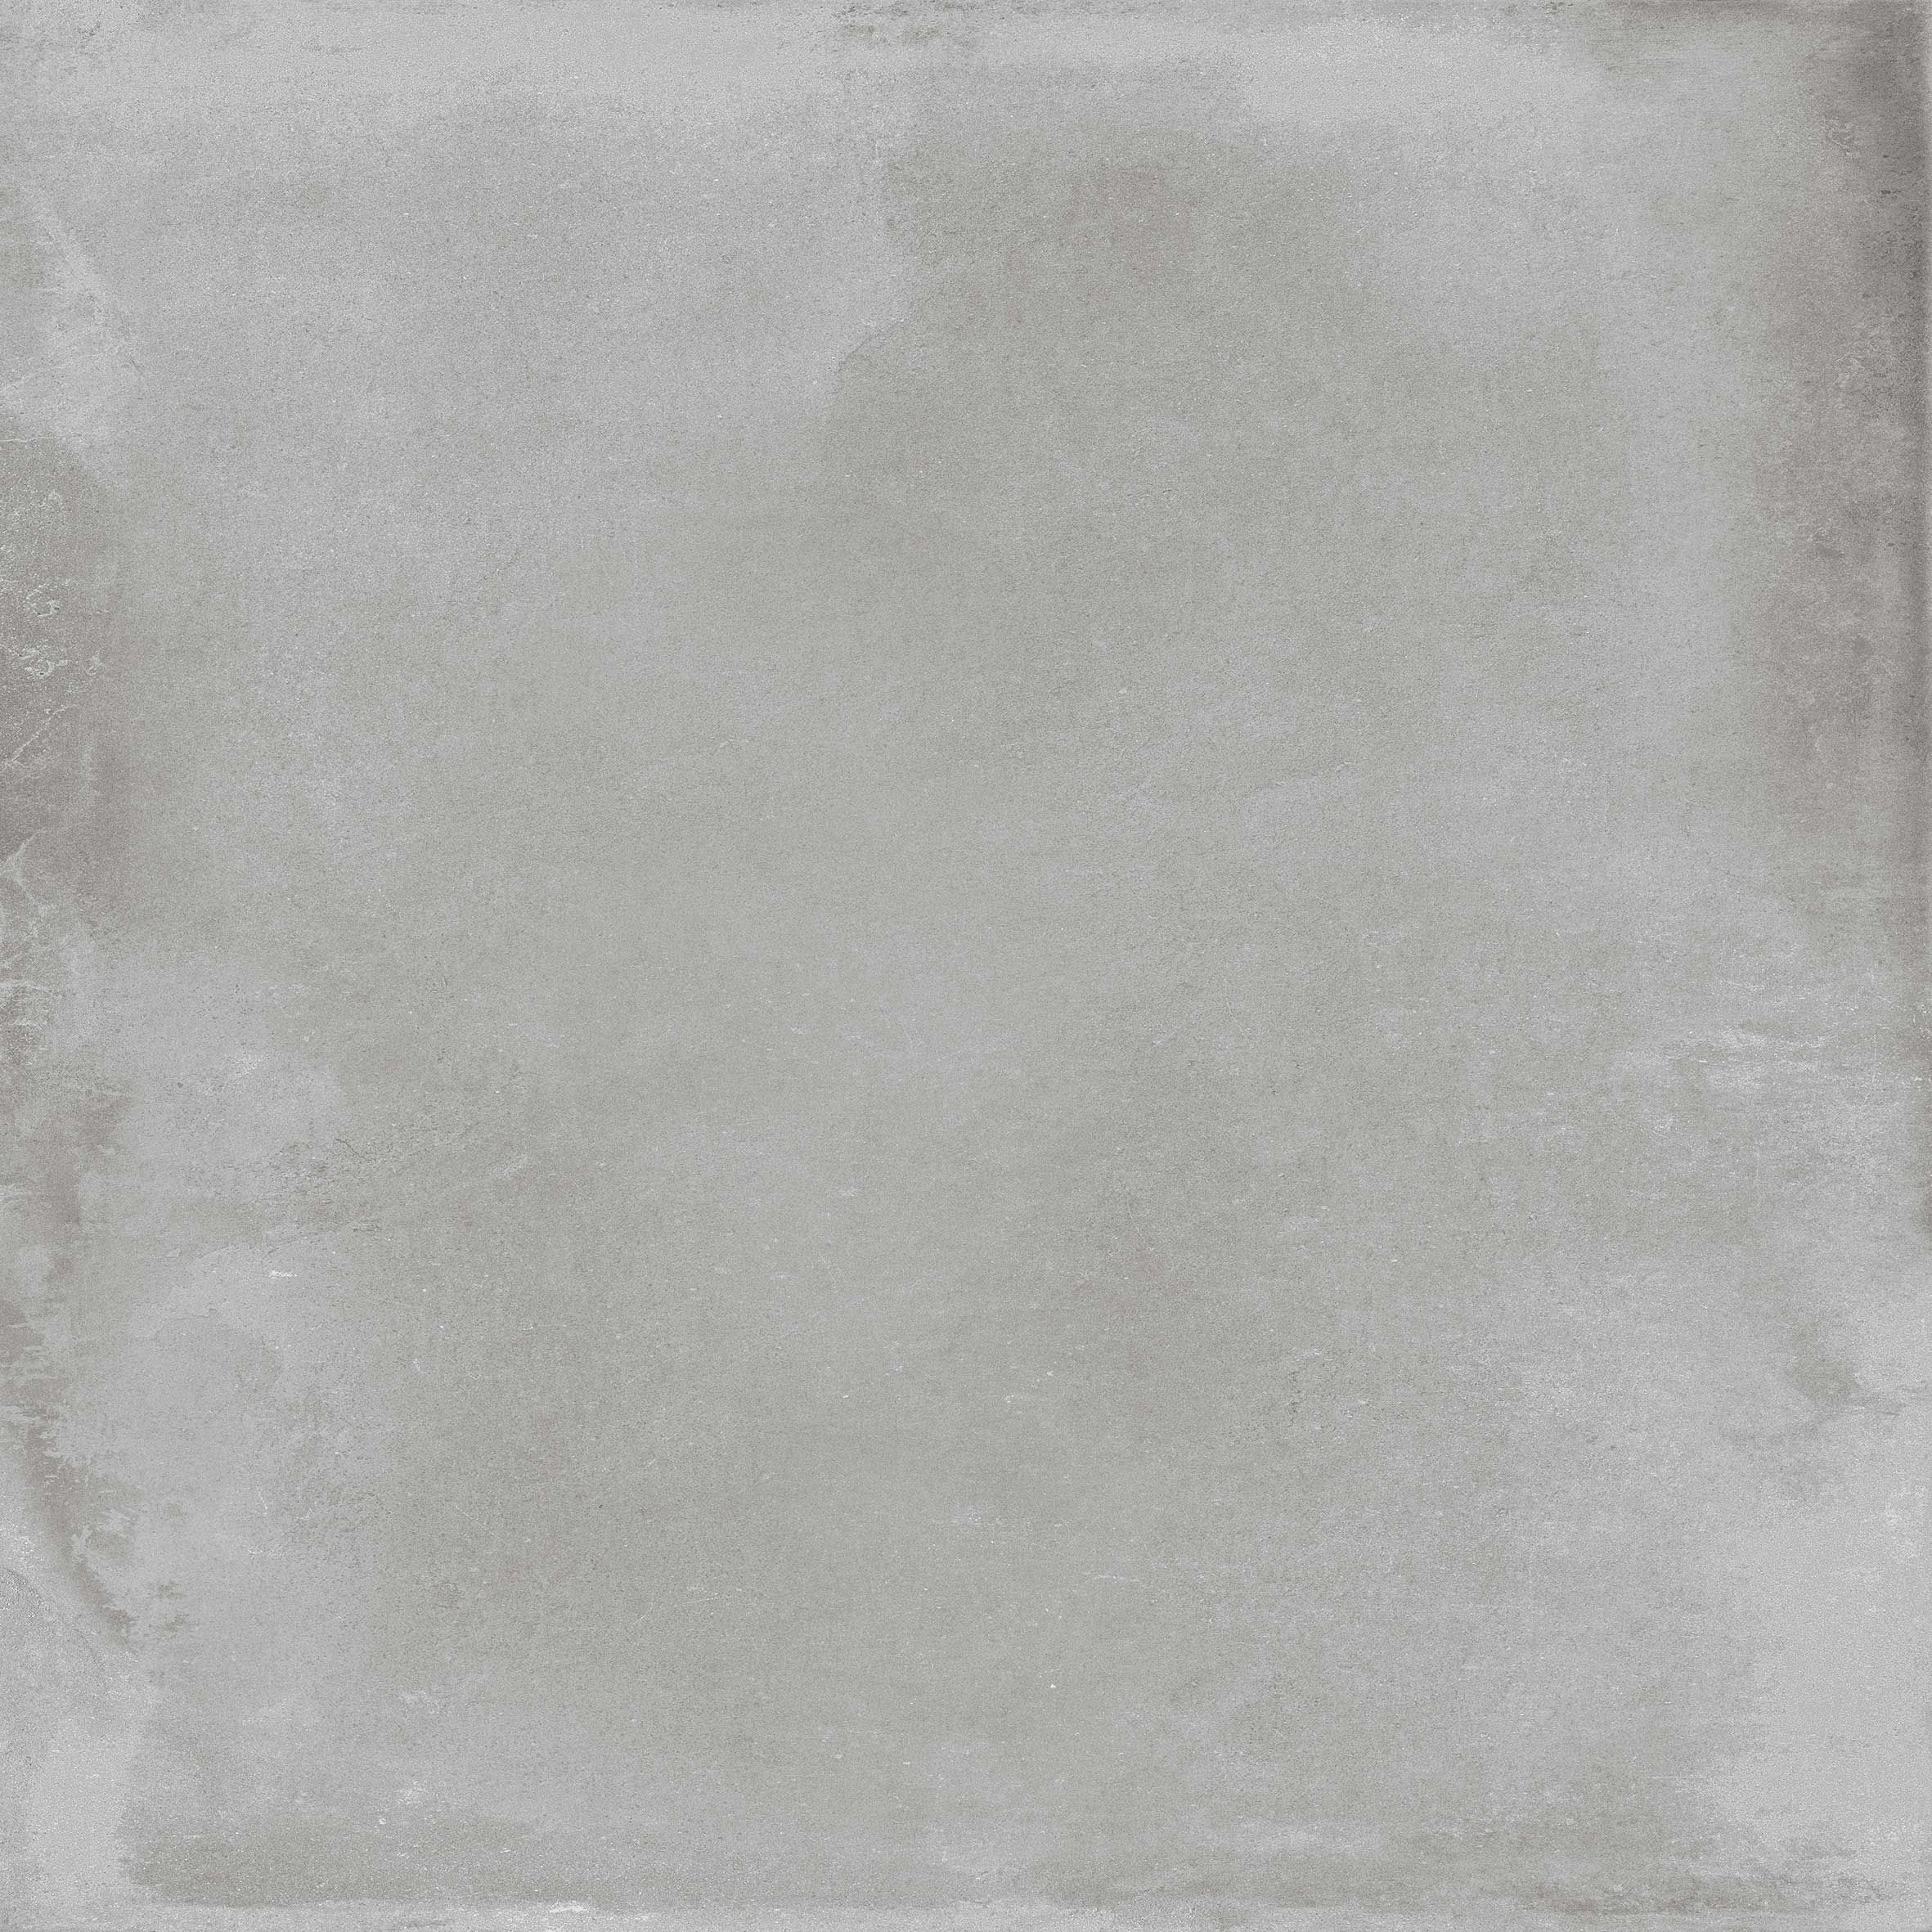 Derby gris colored body porcelain by roca porcelain tiles by discover our color body porcelain from roca tile usa indoor and outdoor ceramic tiles dailygadgetfo Image collections